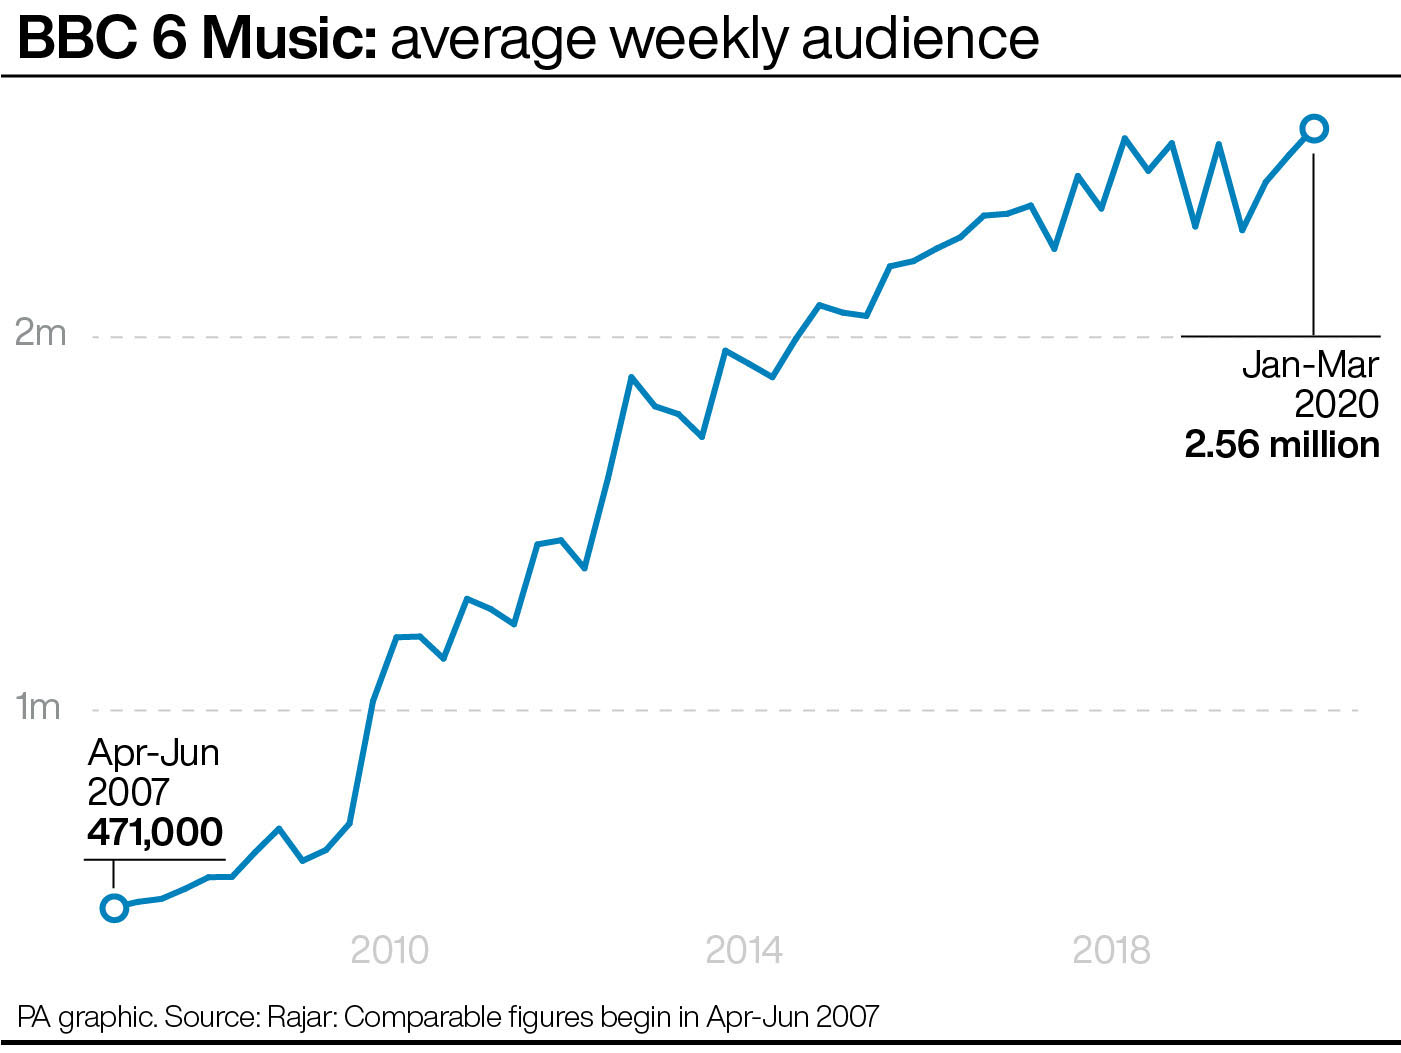 BBC 6 Music: average weekly audience